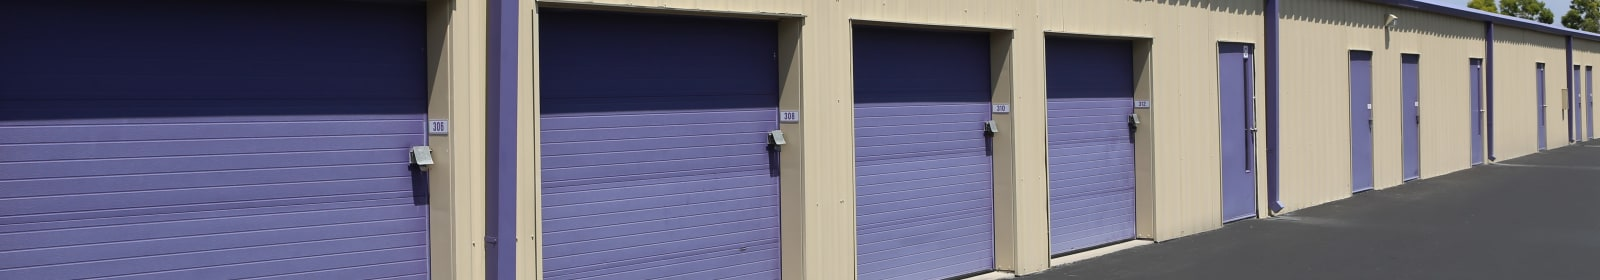 Self storage solutions in Jackson, Tennessee